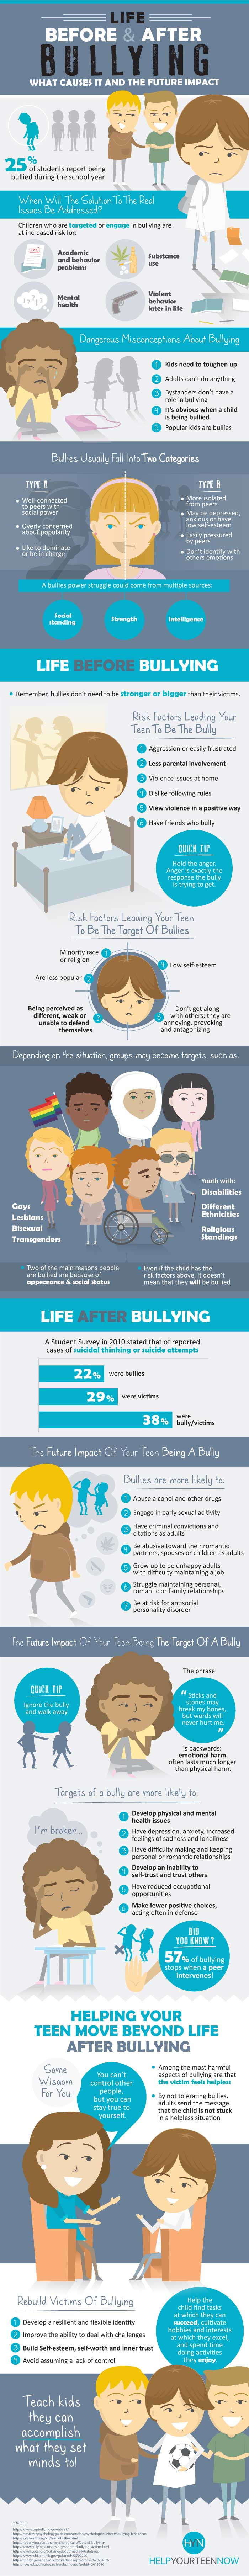 http://helpyourteennow.com/wp-content/uploads/2016/07/Life-Before-And-After-Bullying-Infographic-What-Causes-It-And-The-Future-Impact.jpg